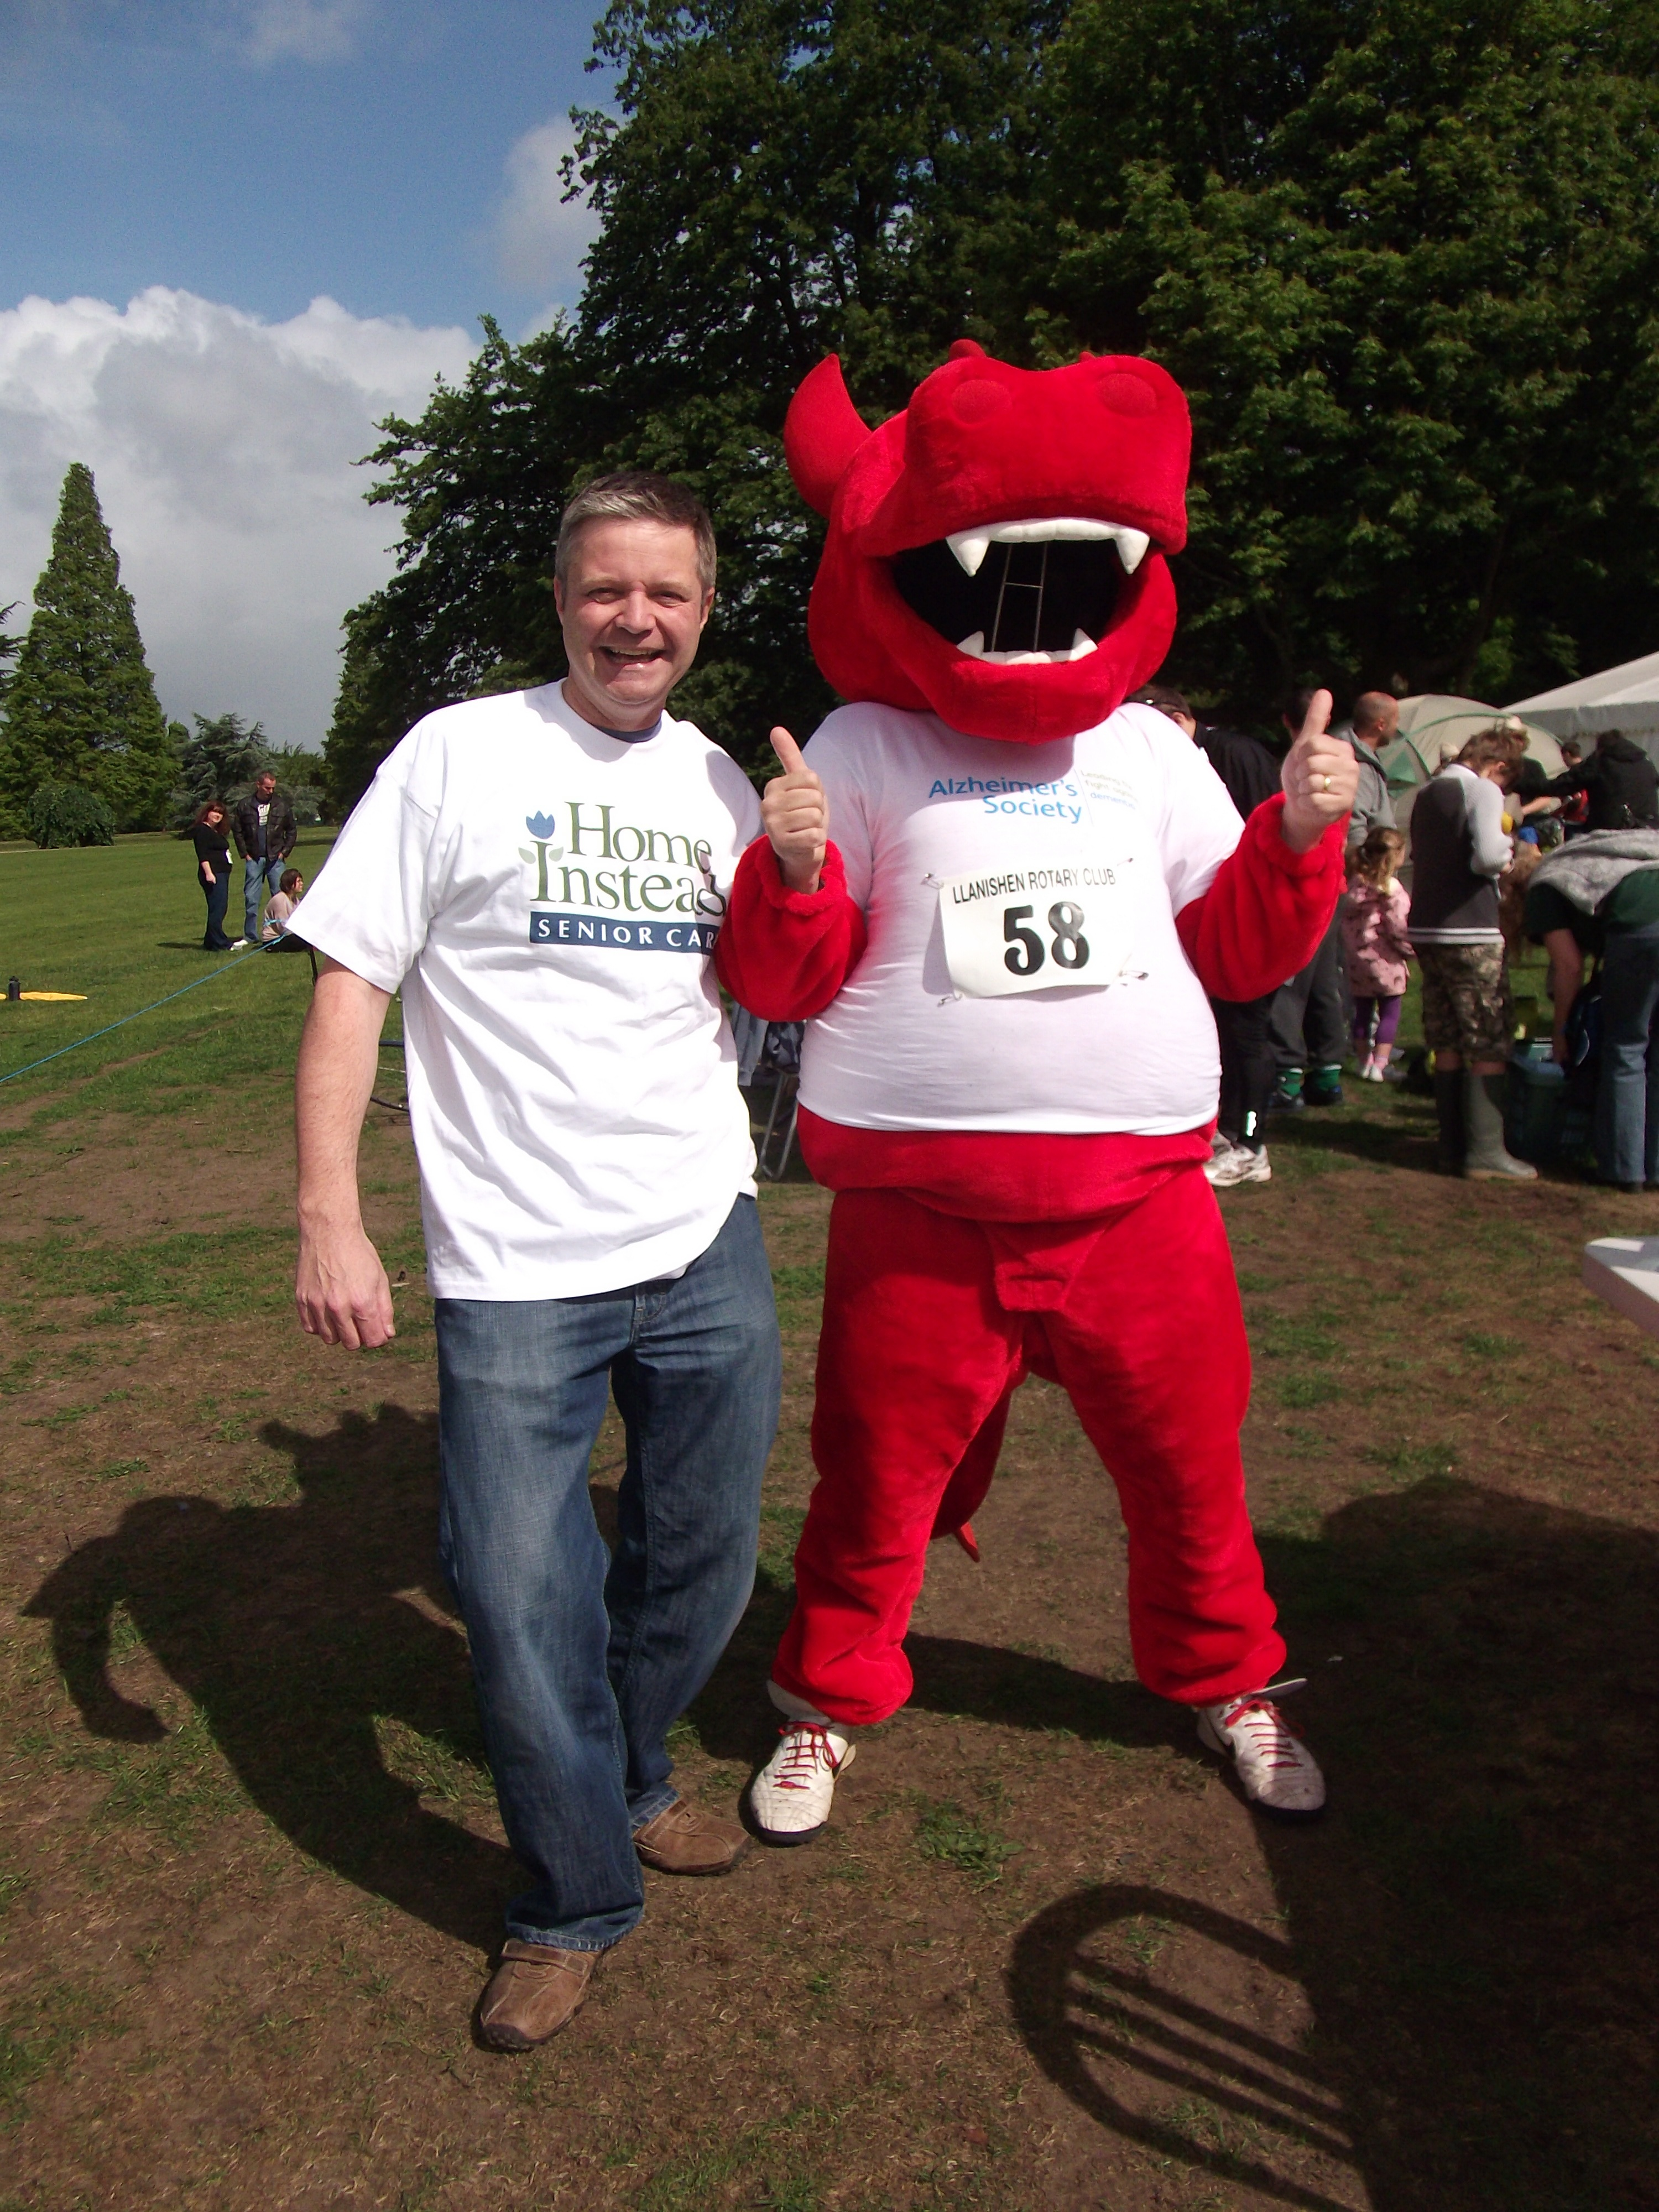 Phil Batchelor, director of Home Instead Cardiff, next to Stephen Westlake, a member of the local Llanishen Community Police team, who donated a the dragon costume for the Alzheimer's society